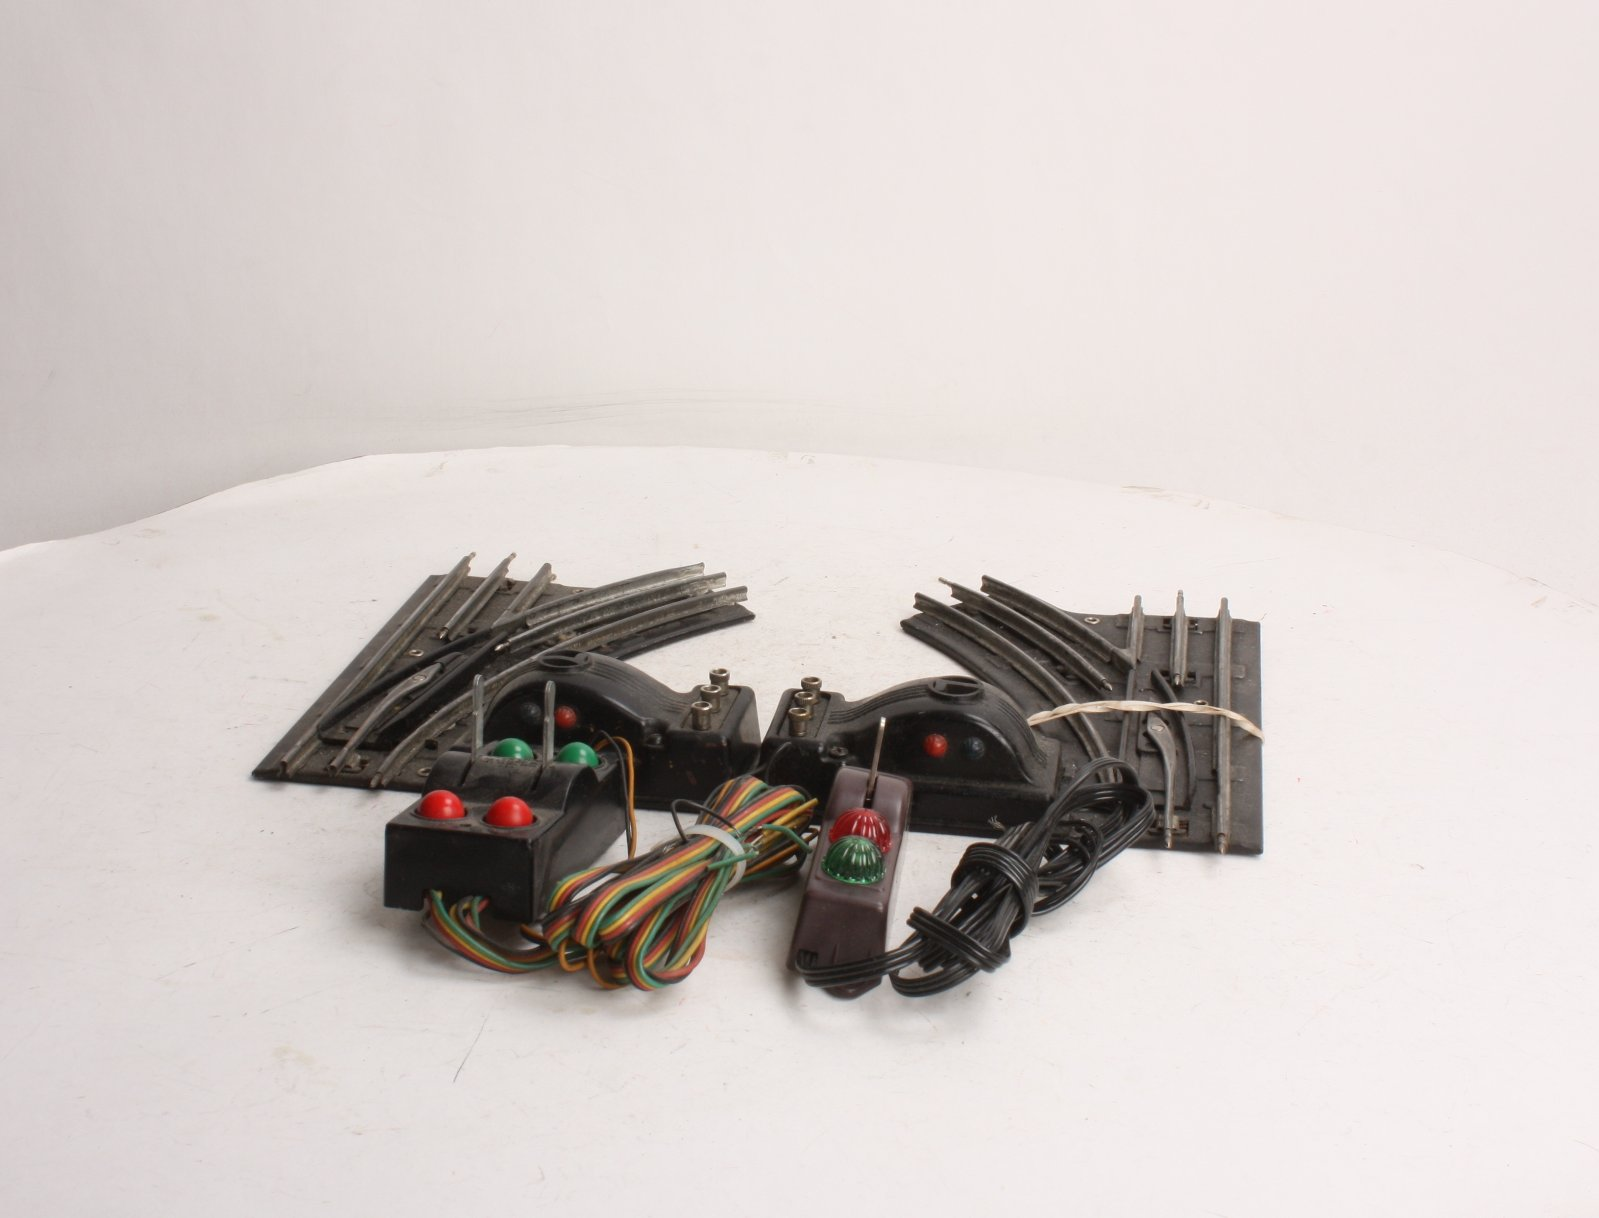 hight resolution of lionel 1121 o27 righthand lefthand electric switches pair 023922611215 lionel 1121